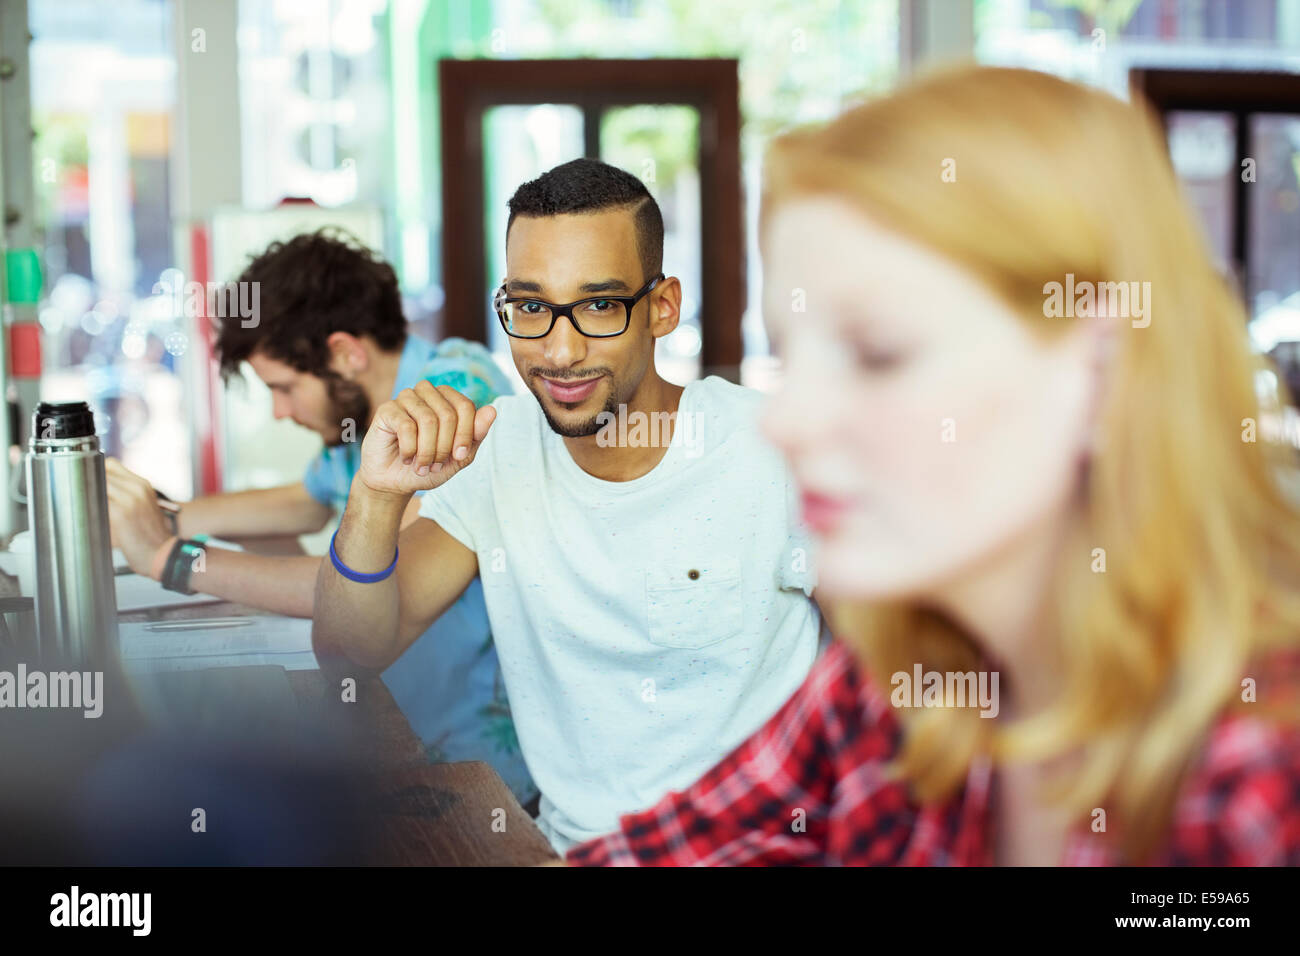 Man working in cafe - Stock Image